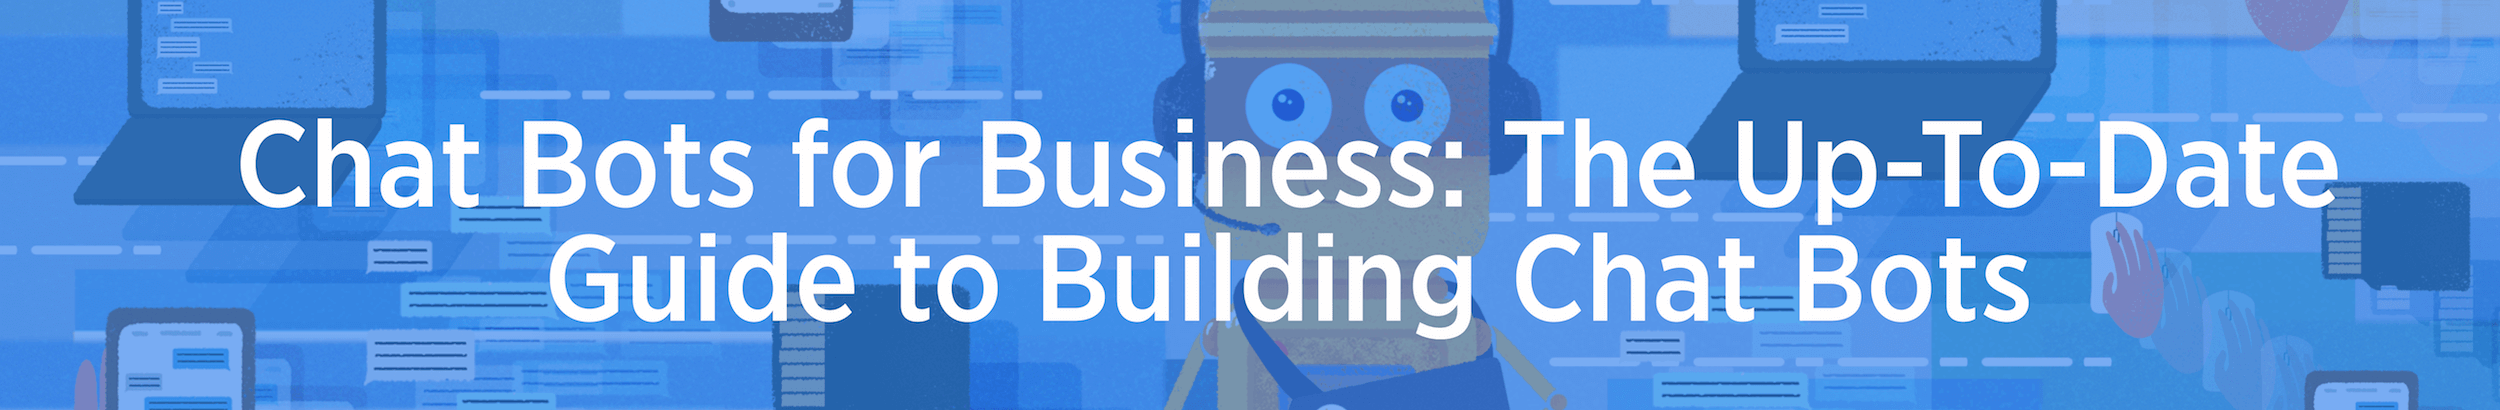 Chat Bots for Business: The Up-To-Date Guide to Building Chat Bots